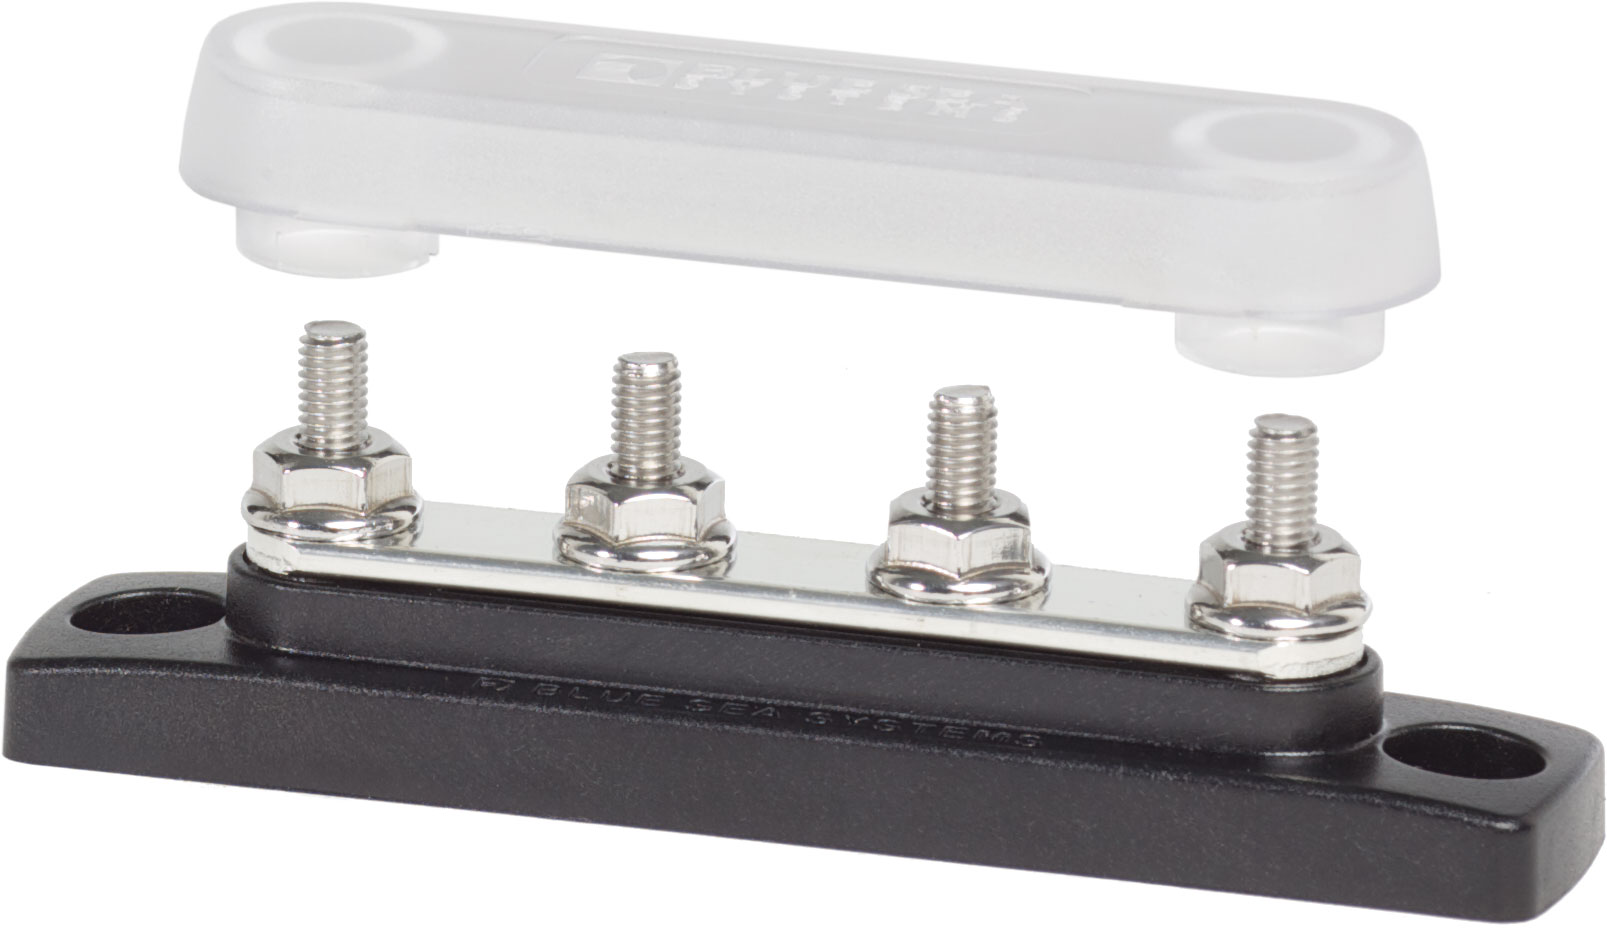 Common 100a Mini Busbar 4 Gang With Cover Blue Sea Systems